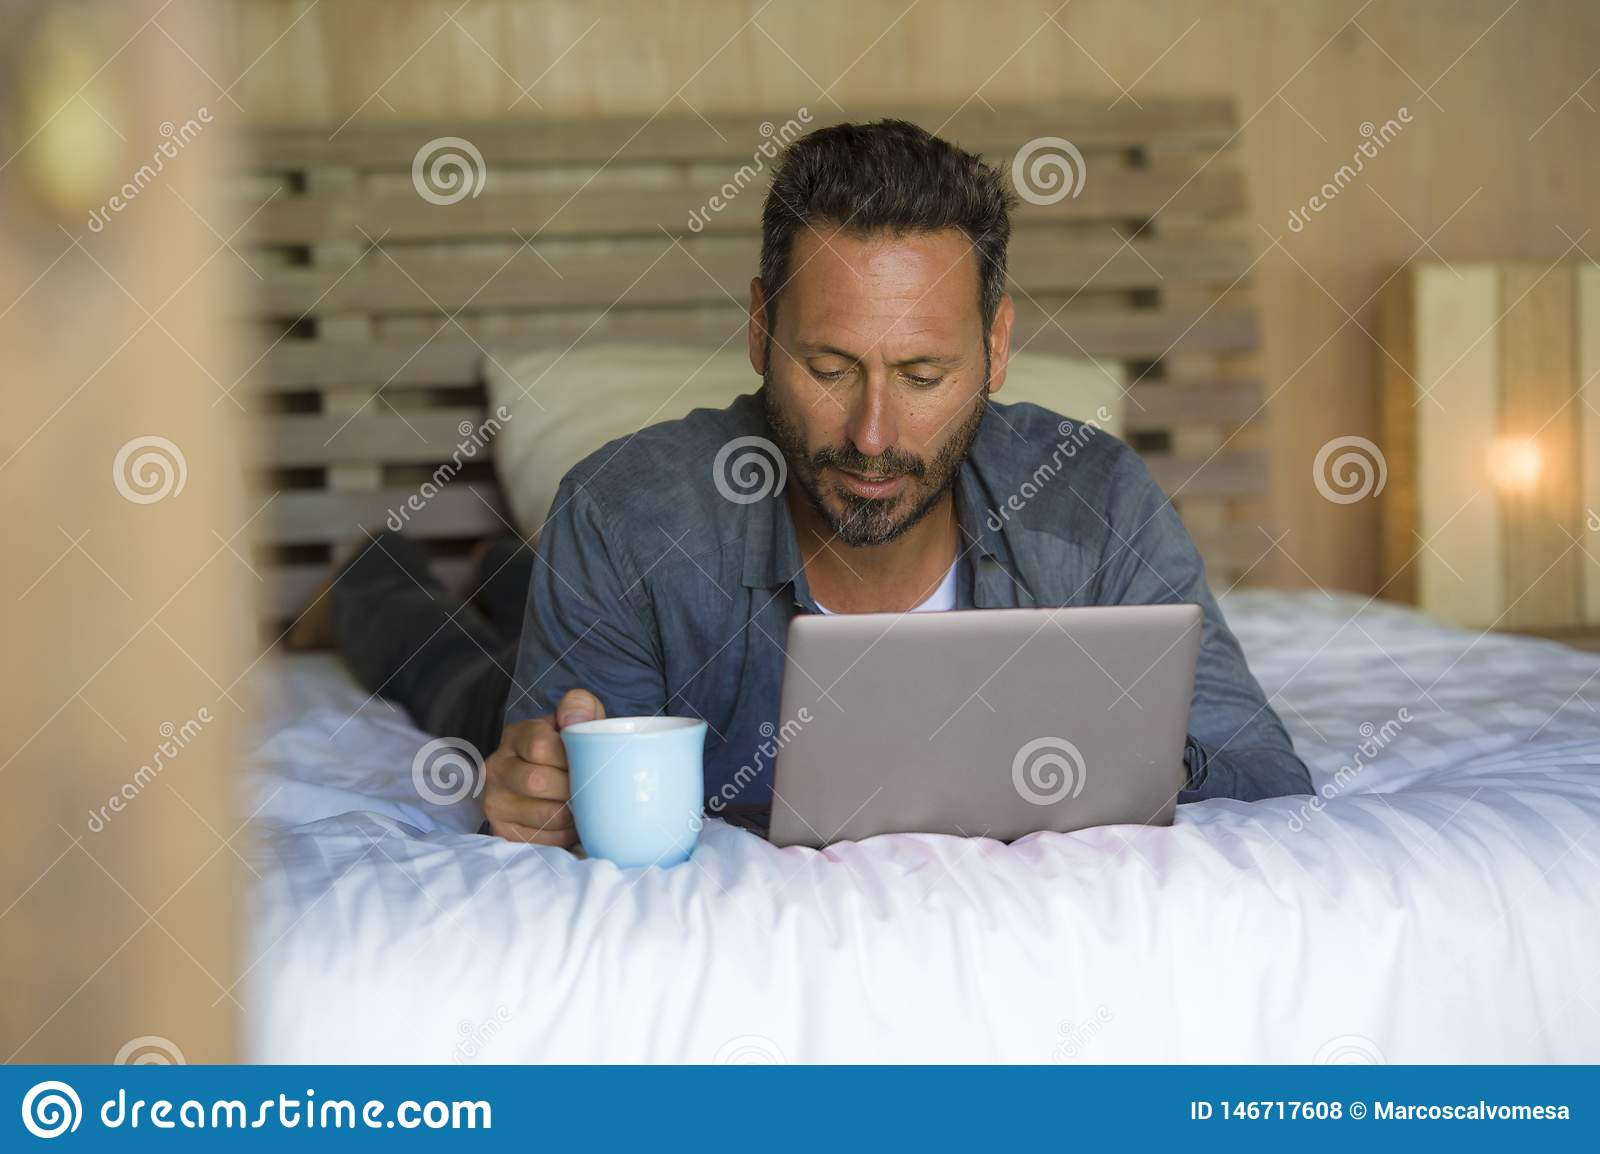 Interior portrait of young attractive and happy man at home working relaxed on bed with laptop computer smiling cheerful in